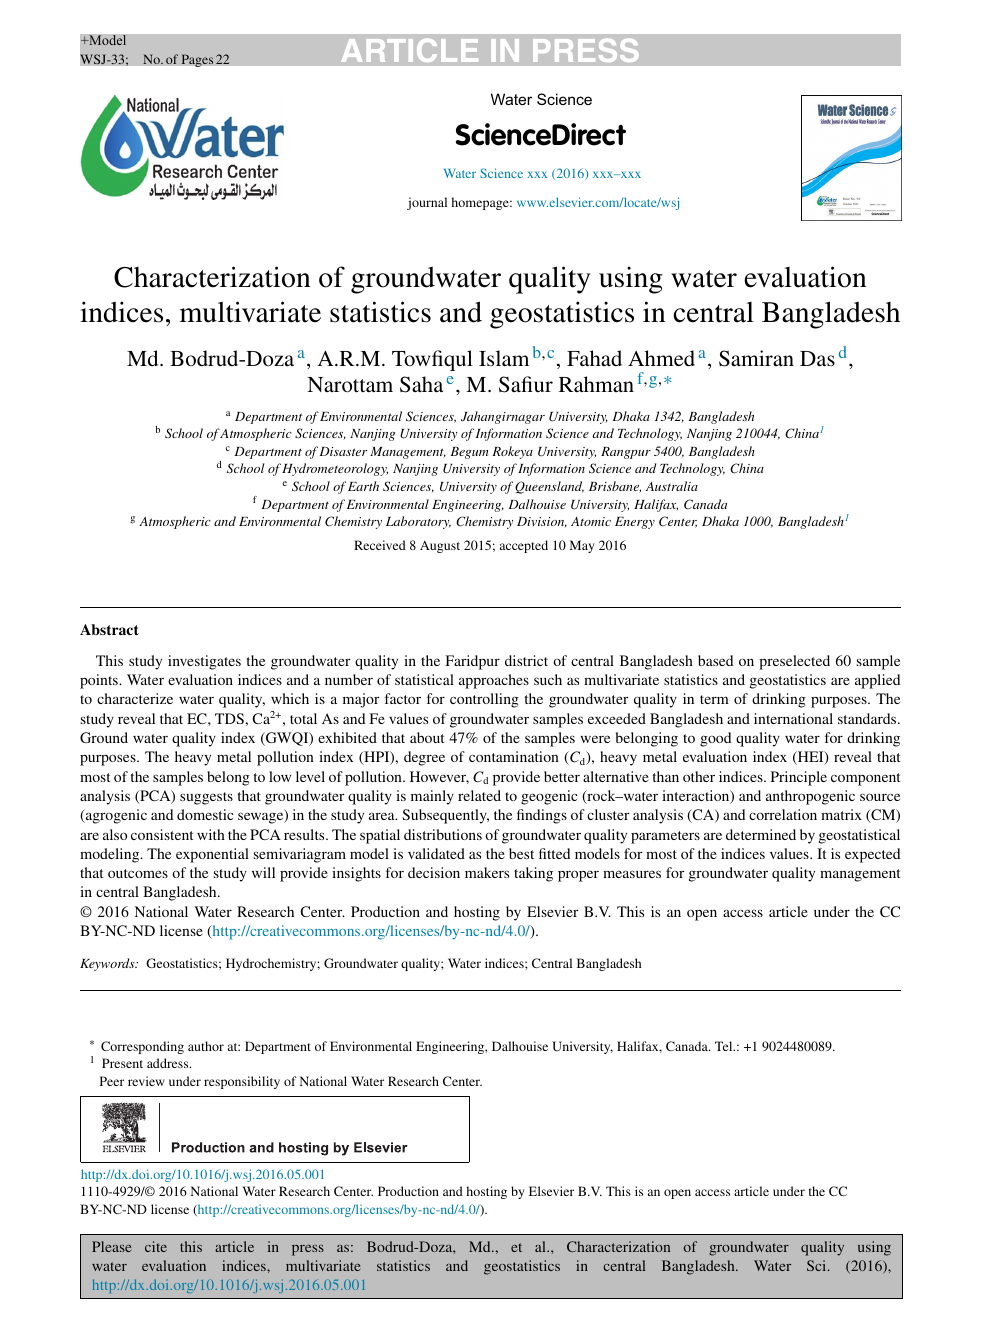 Characterization of groundwater quality using water evaluation